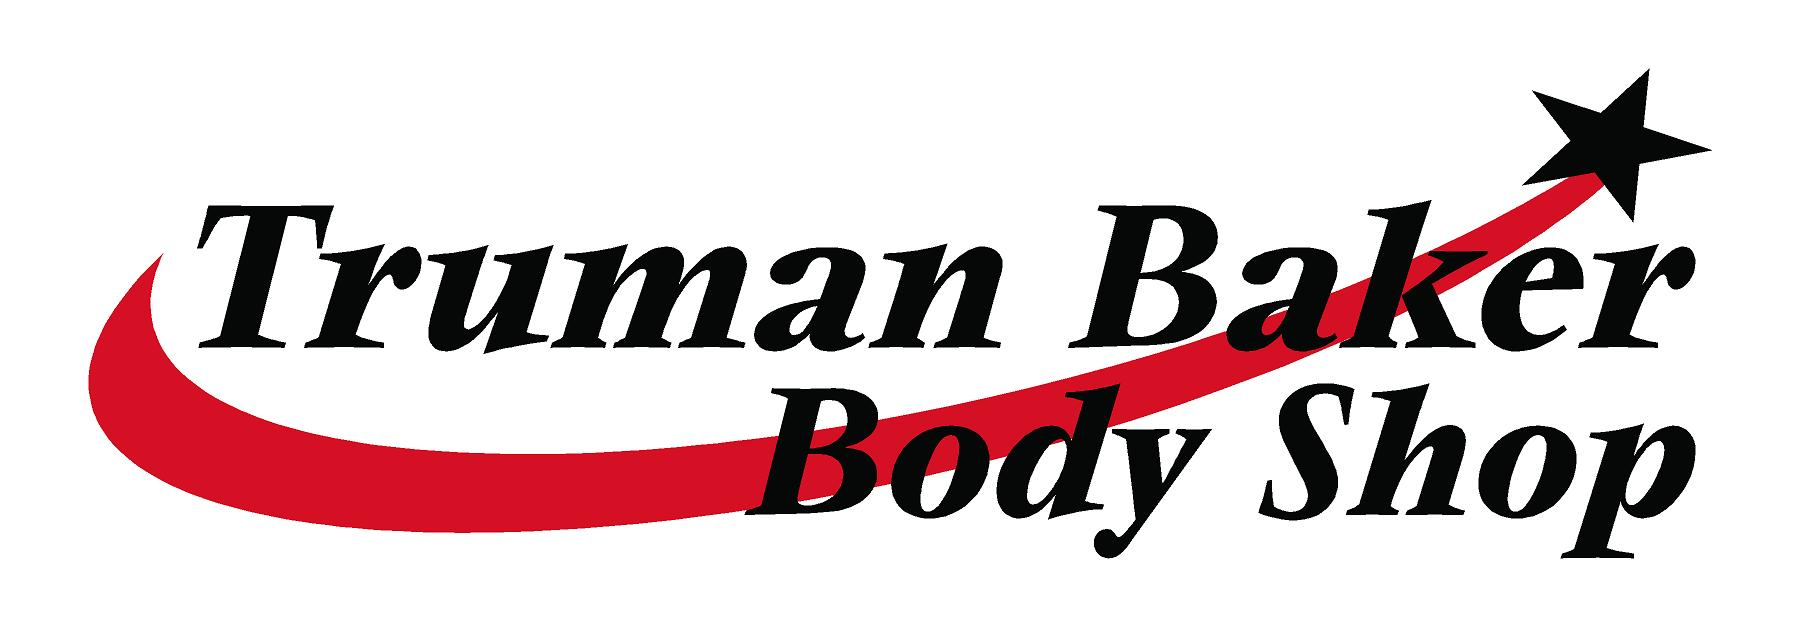 Truman Baker Body Shop|Auto painting & Collision Repair